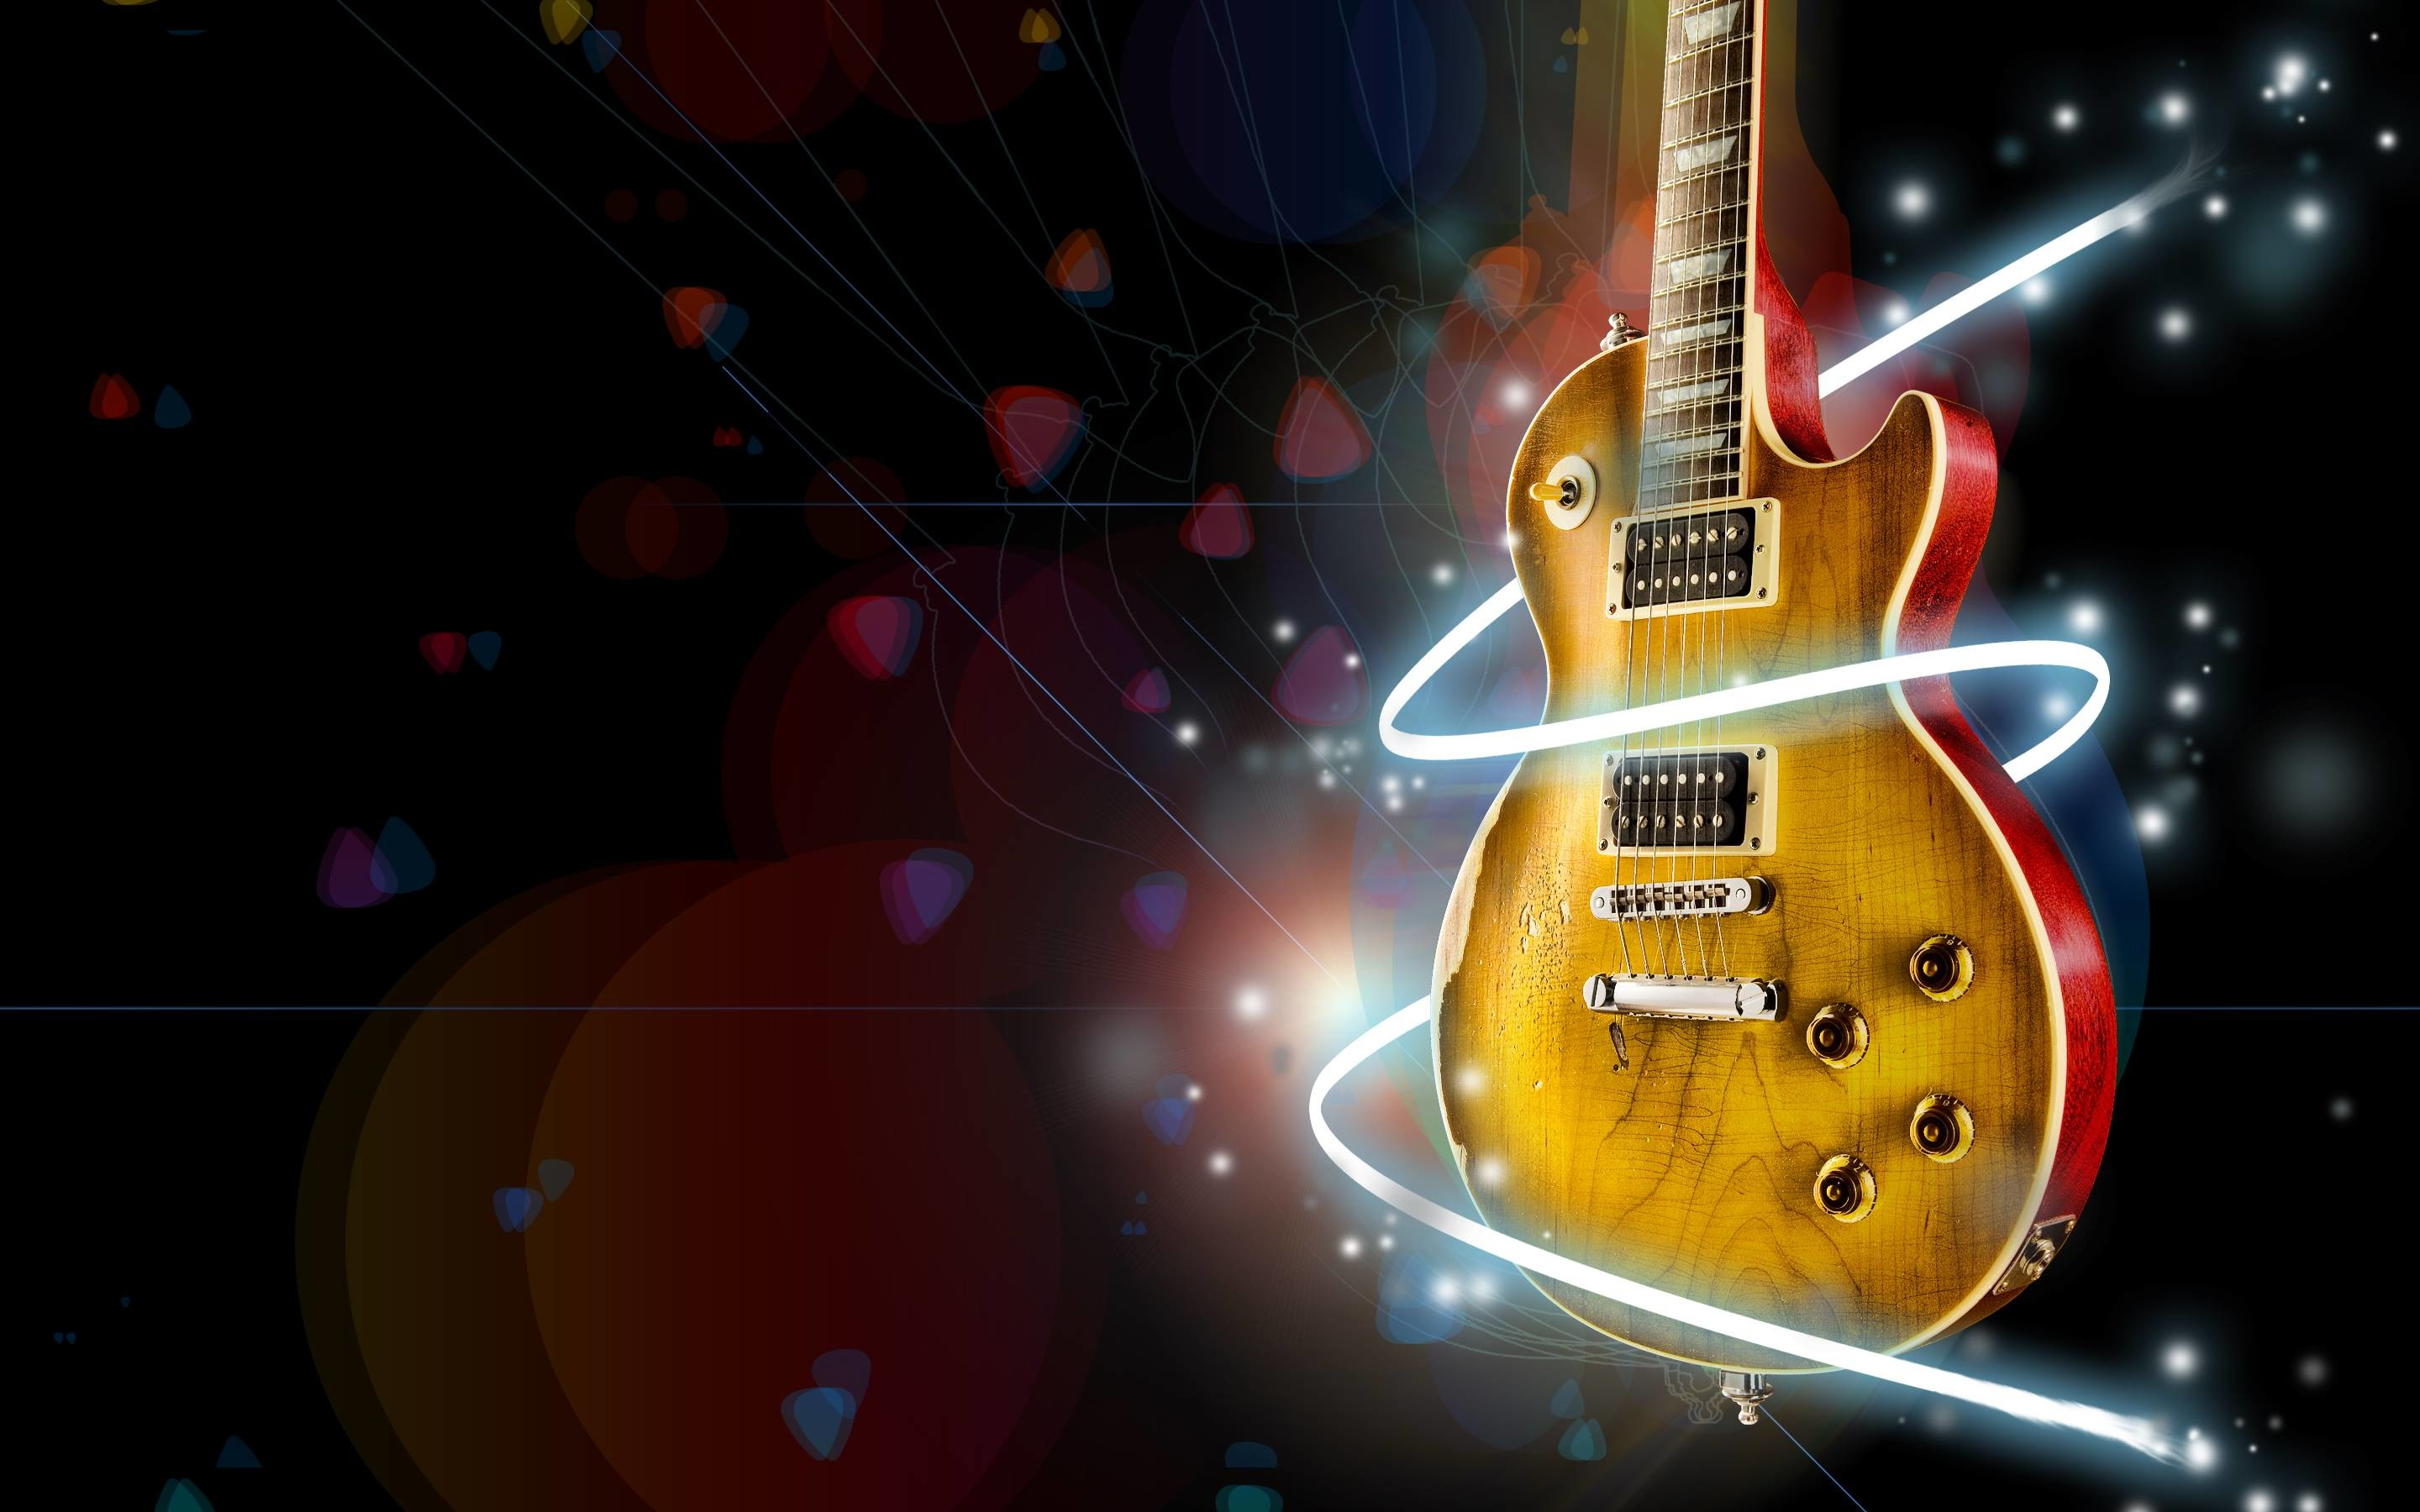 2880x1800 hd guitar wallpapers high resolution pictures hd desktop wallpapers amazing  images cool smart phone background photos download high quality artworks  dual ...